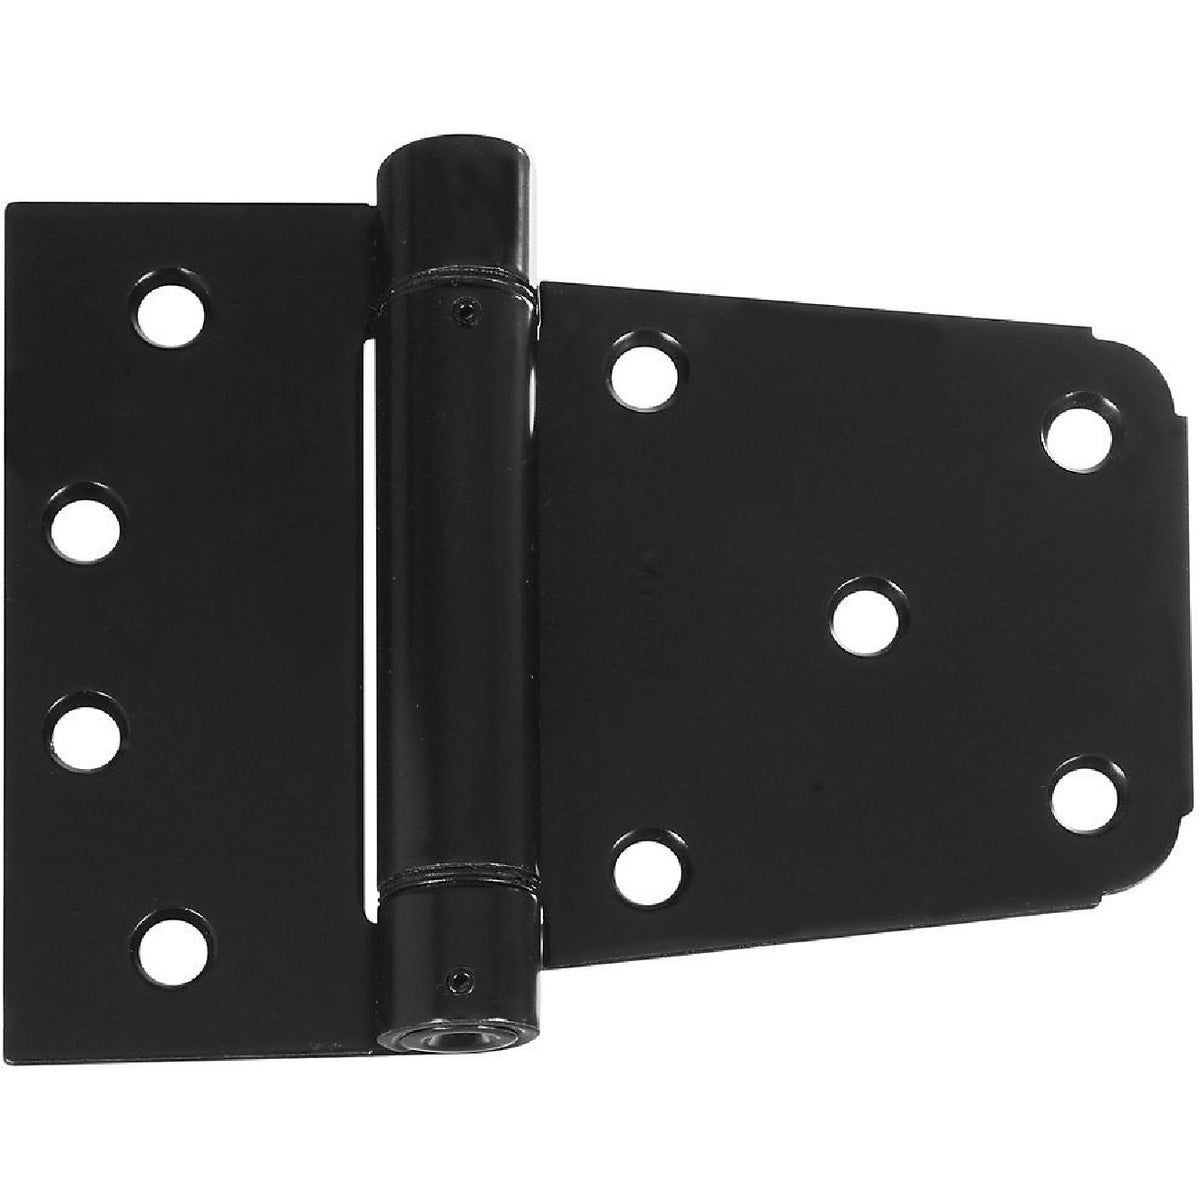 "3-1/2"" BLK SP GATE HINGE - N342774 by National Mfg Co"